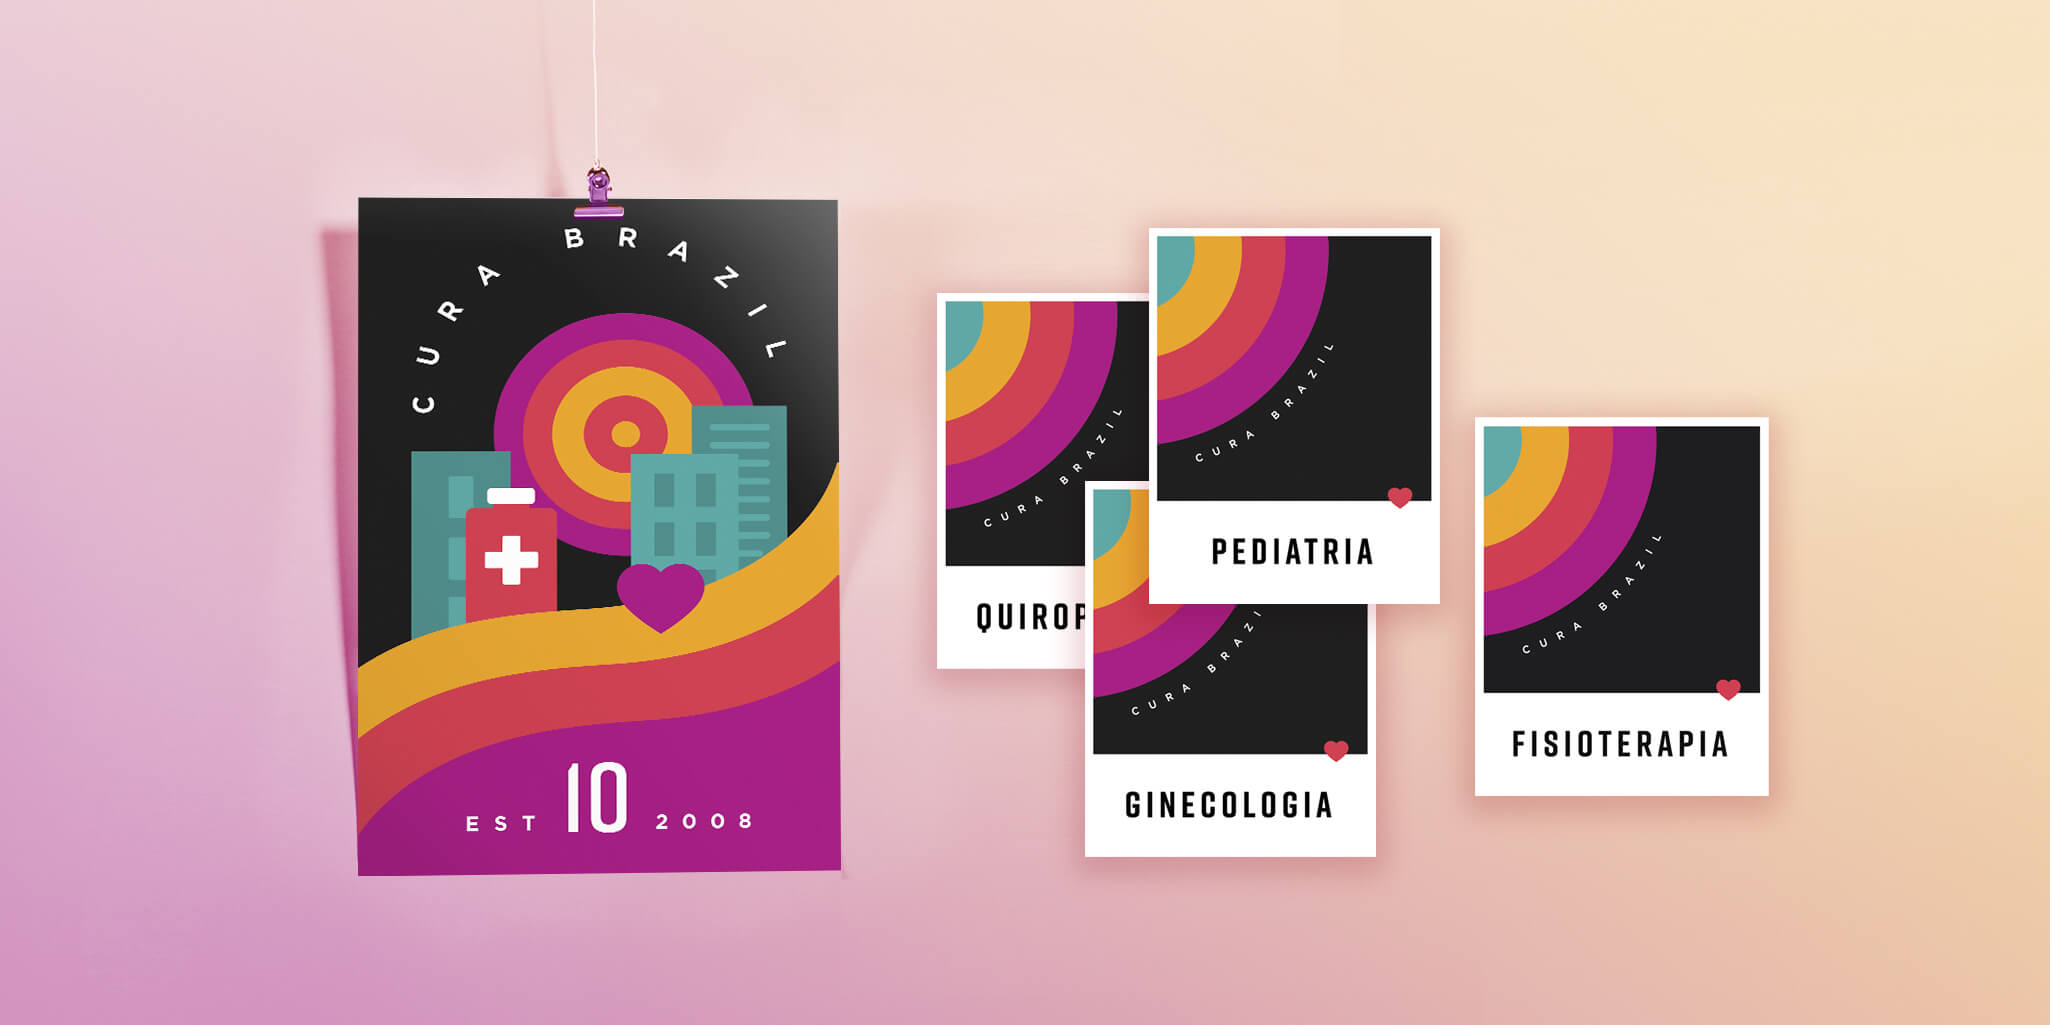 CURA Brazil Posters